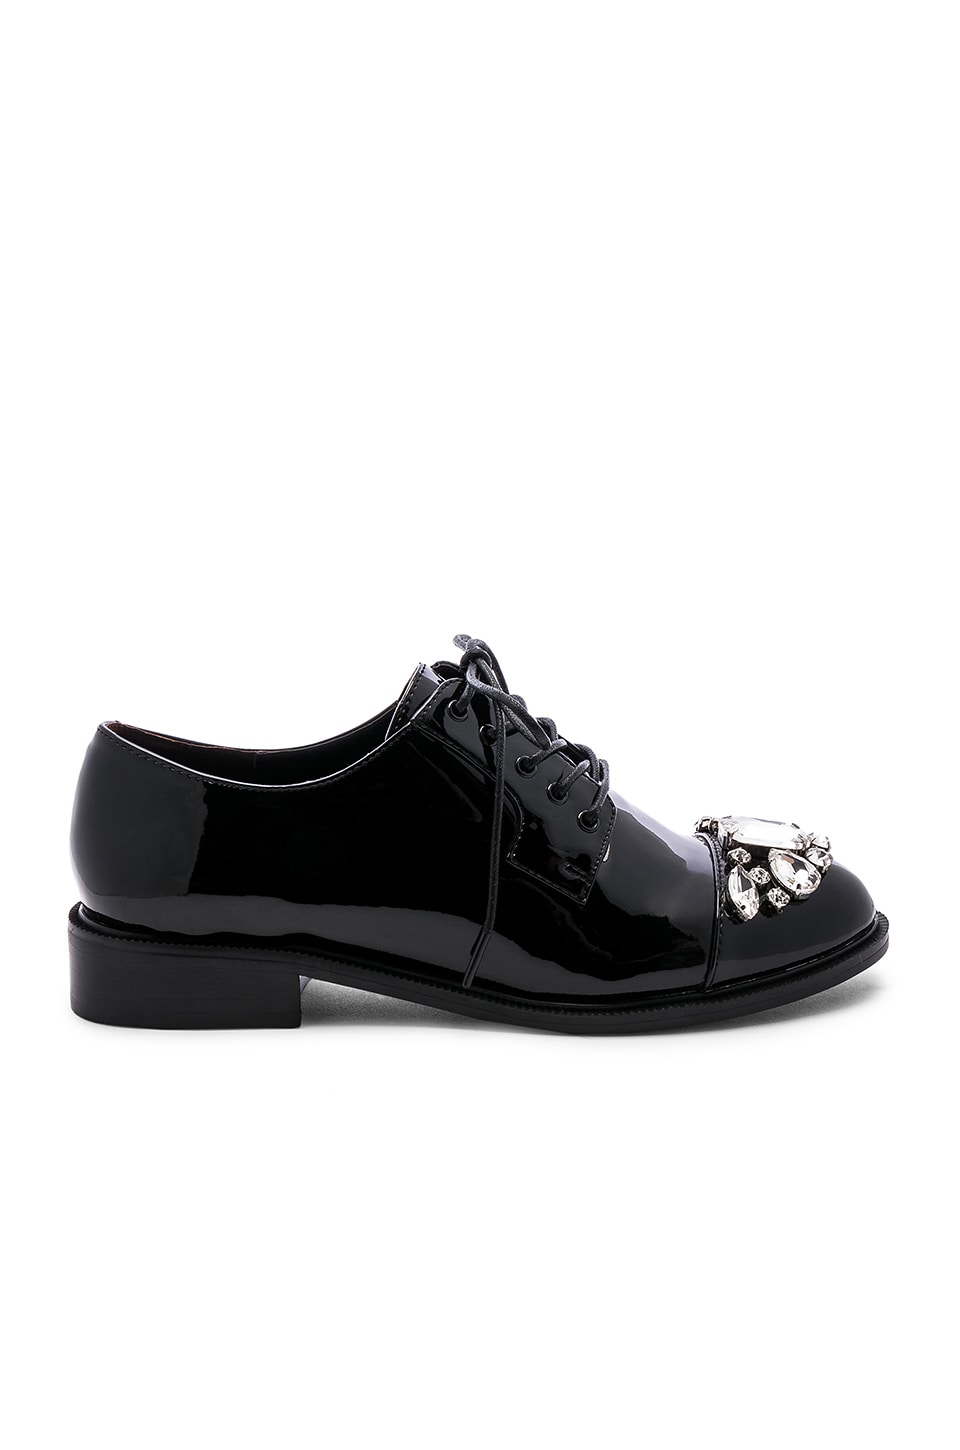 RAYE X House Of Harlow 1960 Kane Oxford in Black